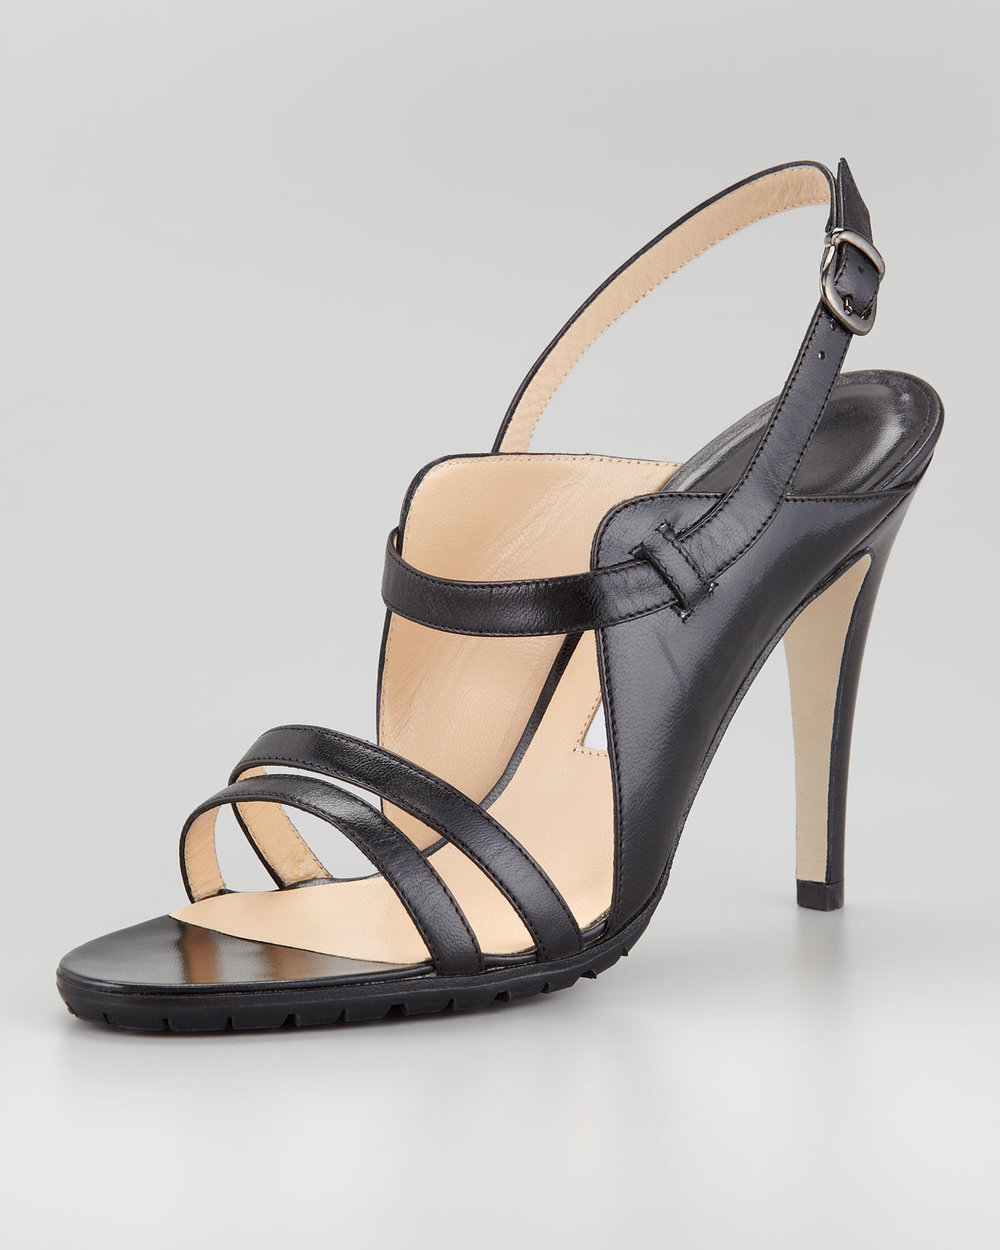 Manolo Blahnik Dodo Double-Band Patent Sandal Black Sale 356.jpg